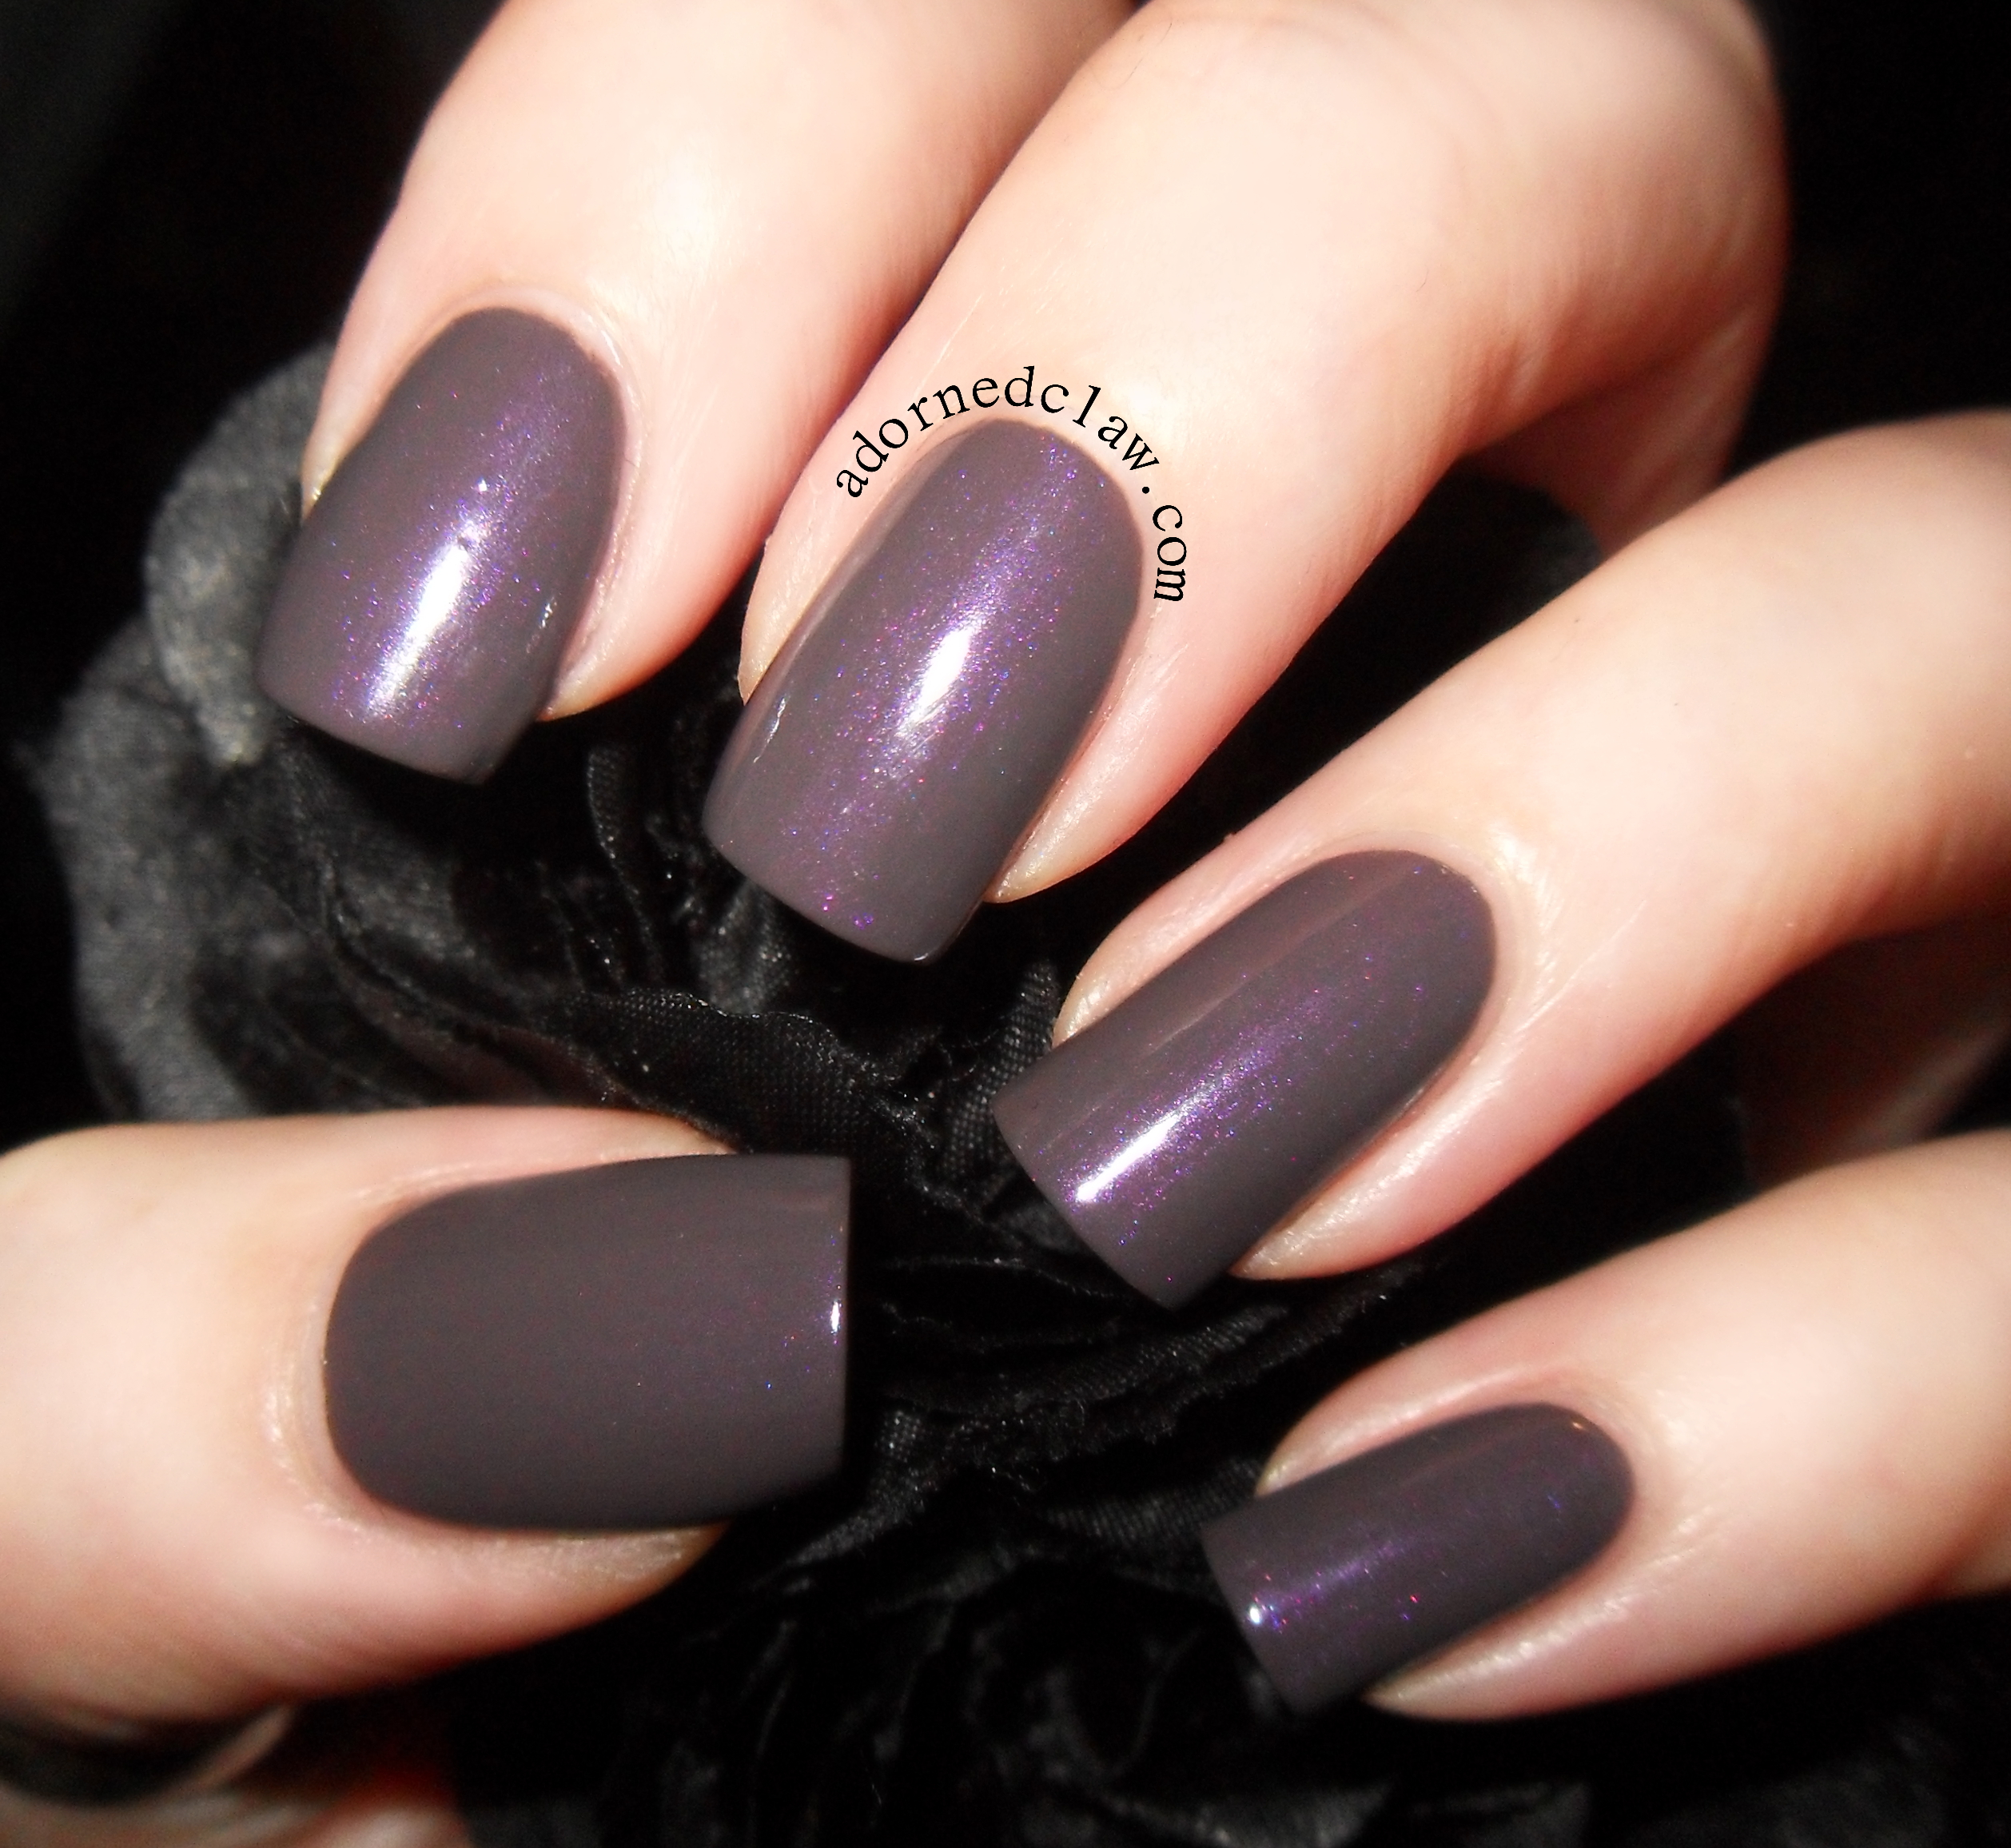 Black Nail Polish Swatch: The Adorned Claw